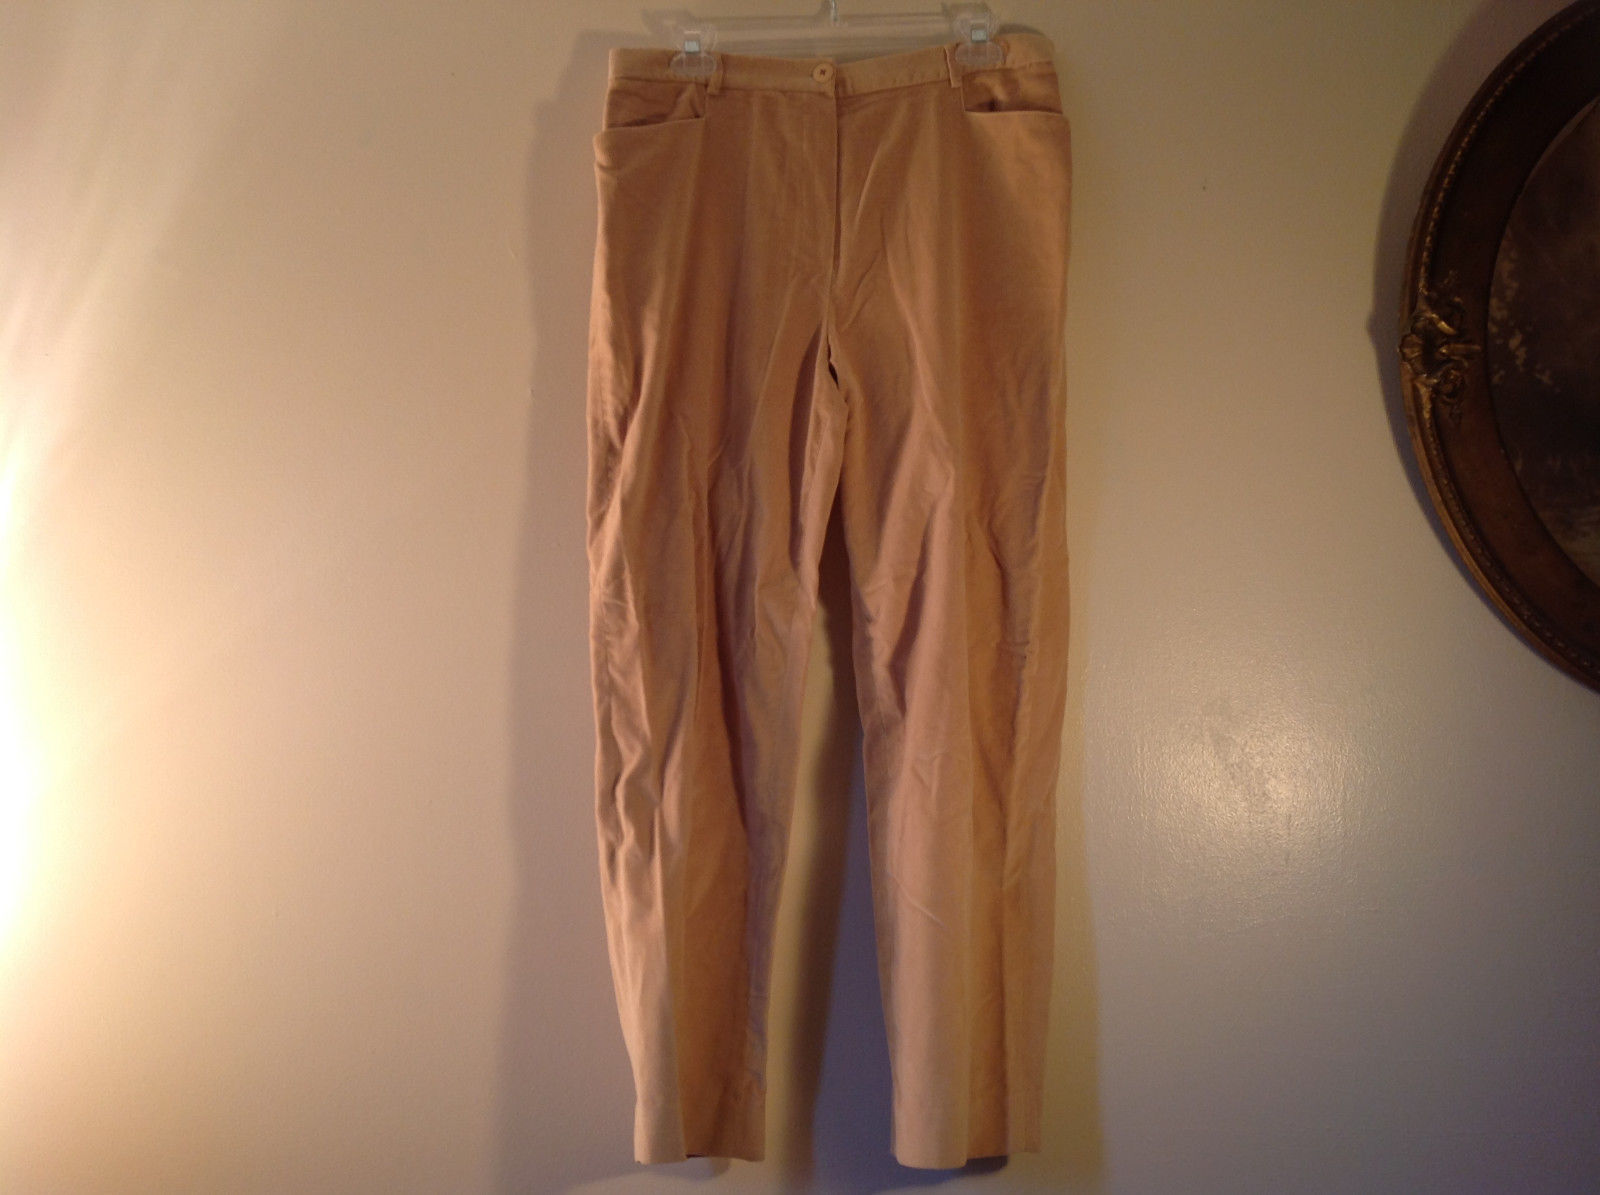 J McLaughlin Size 12 Light Brown Corduroy Pants Made in USA Good Condition